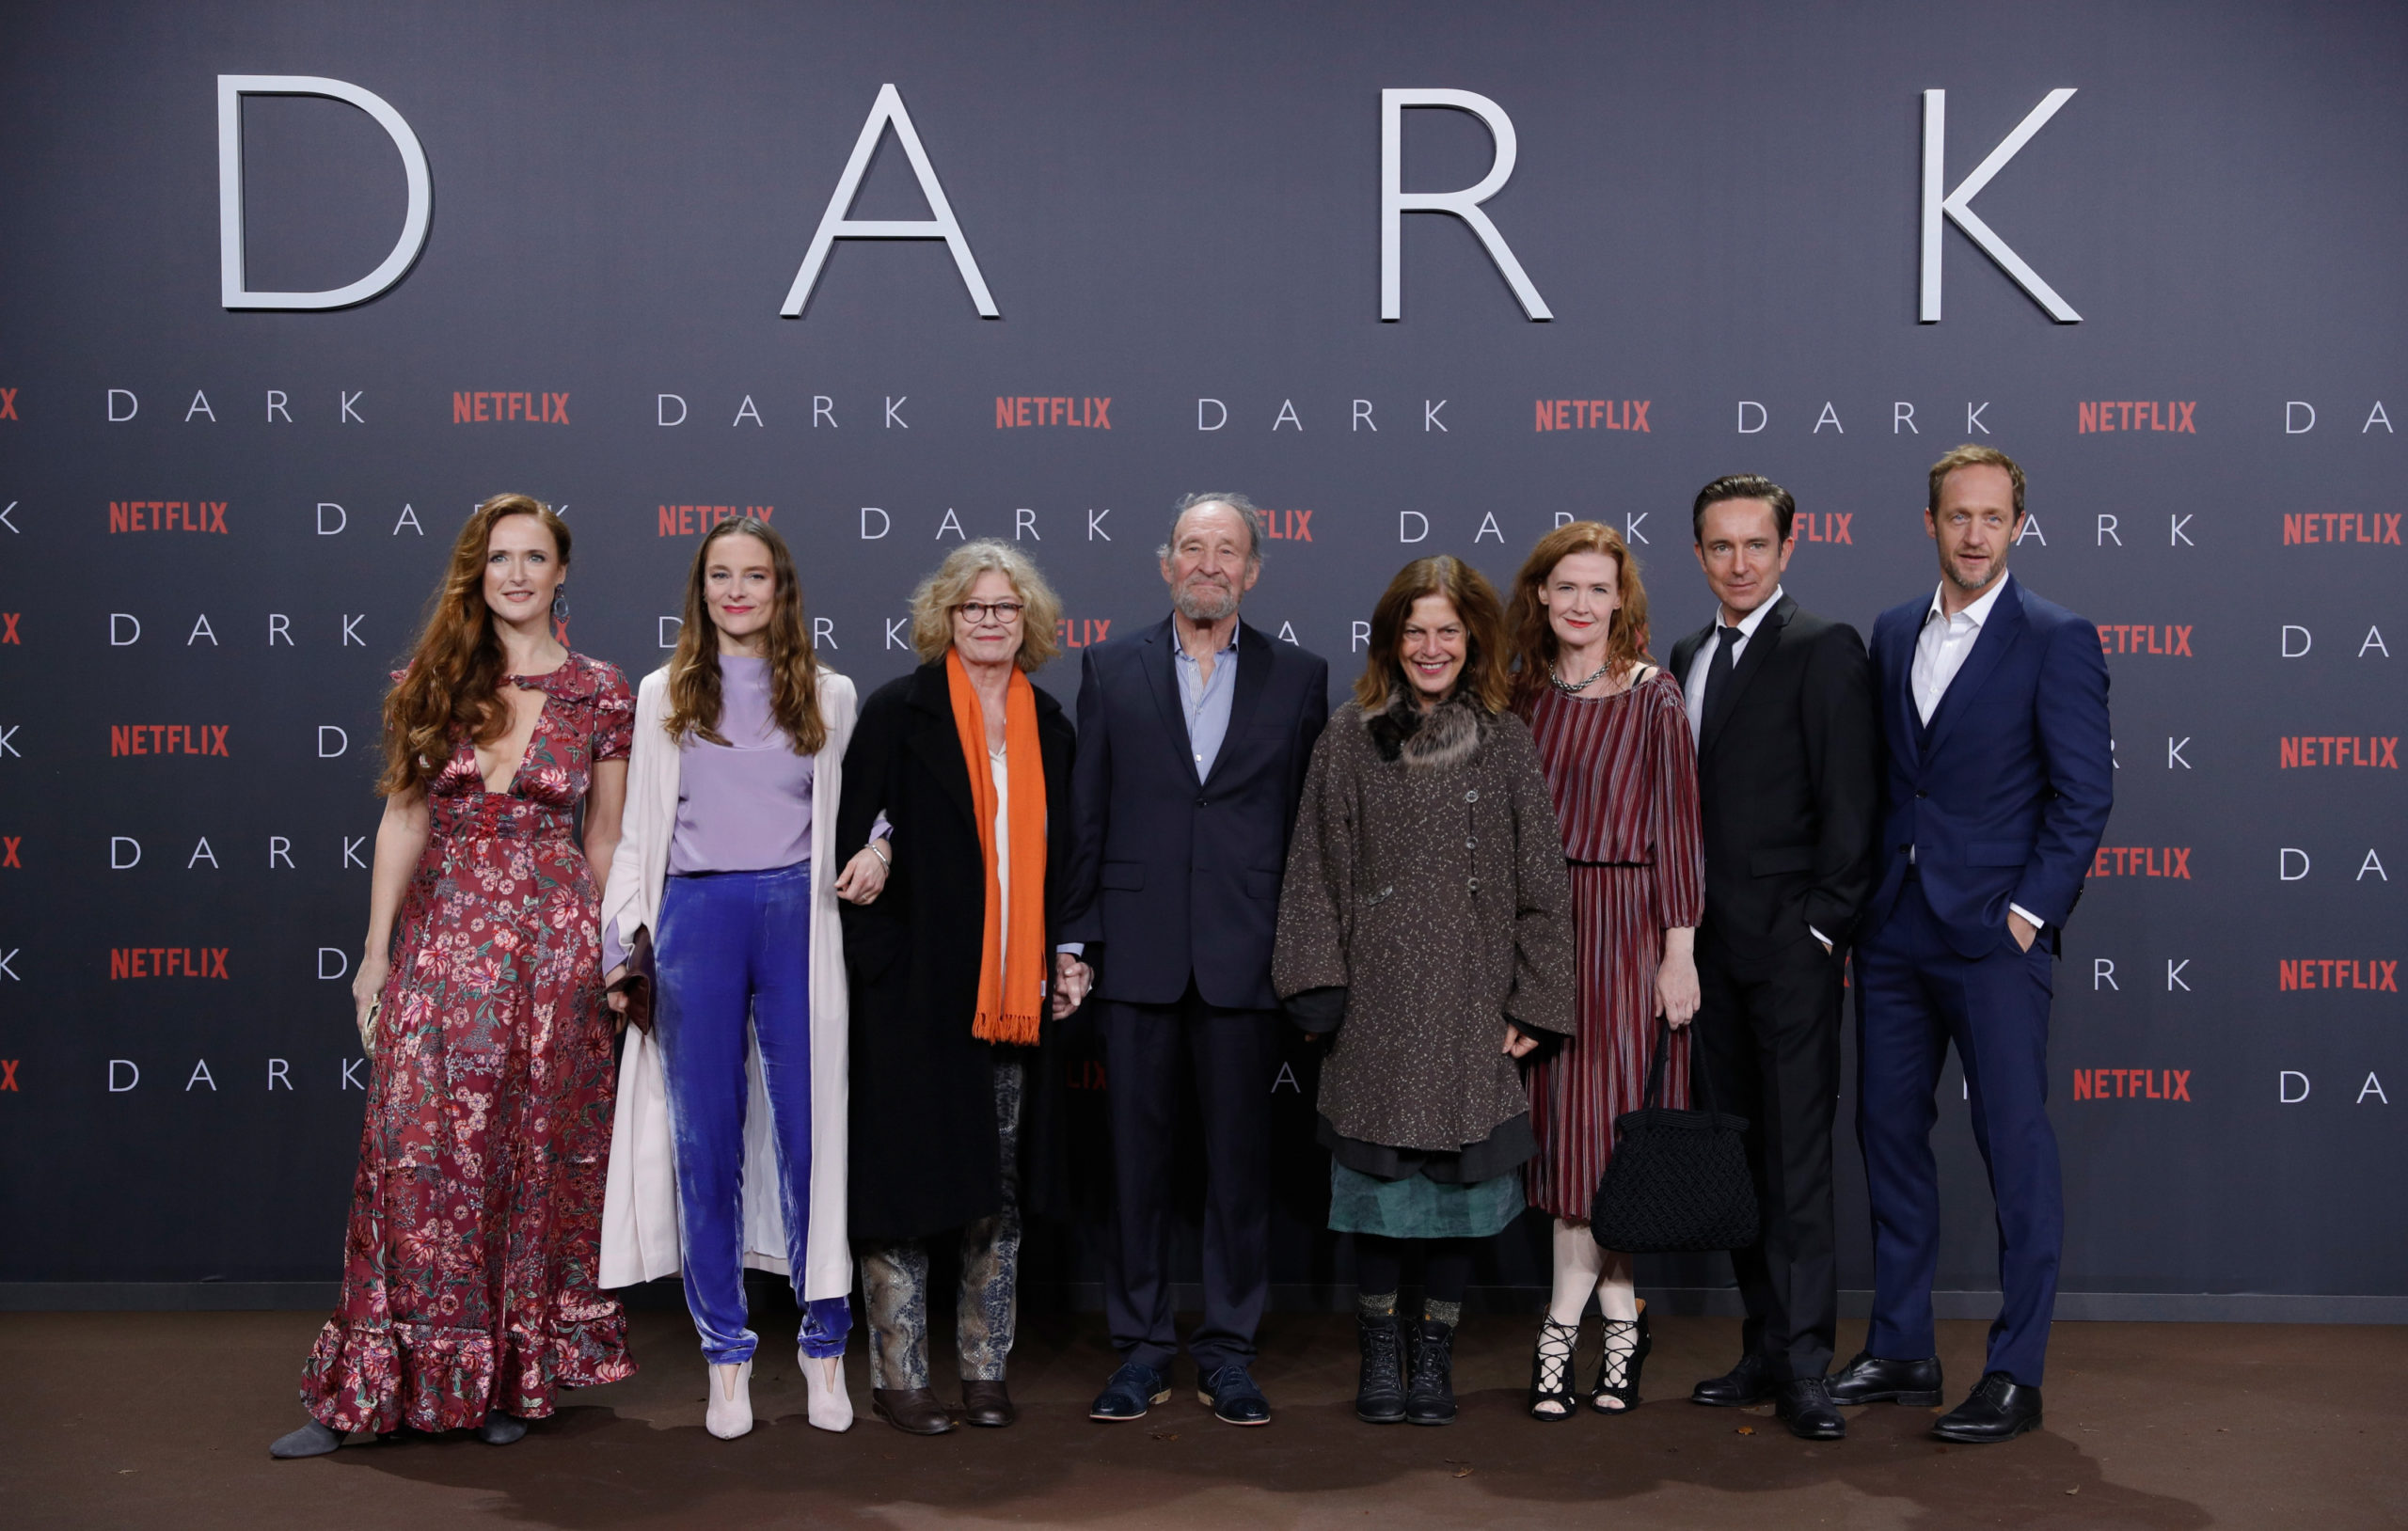 Dark Season 3 Cast Who is coming Back